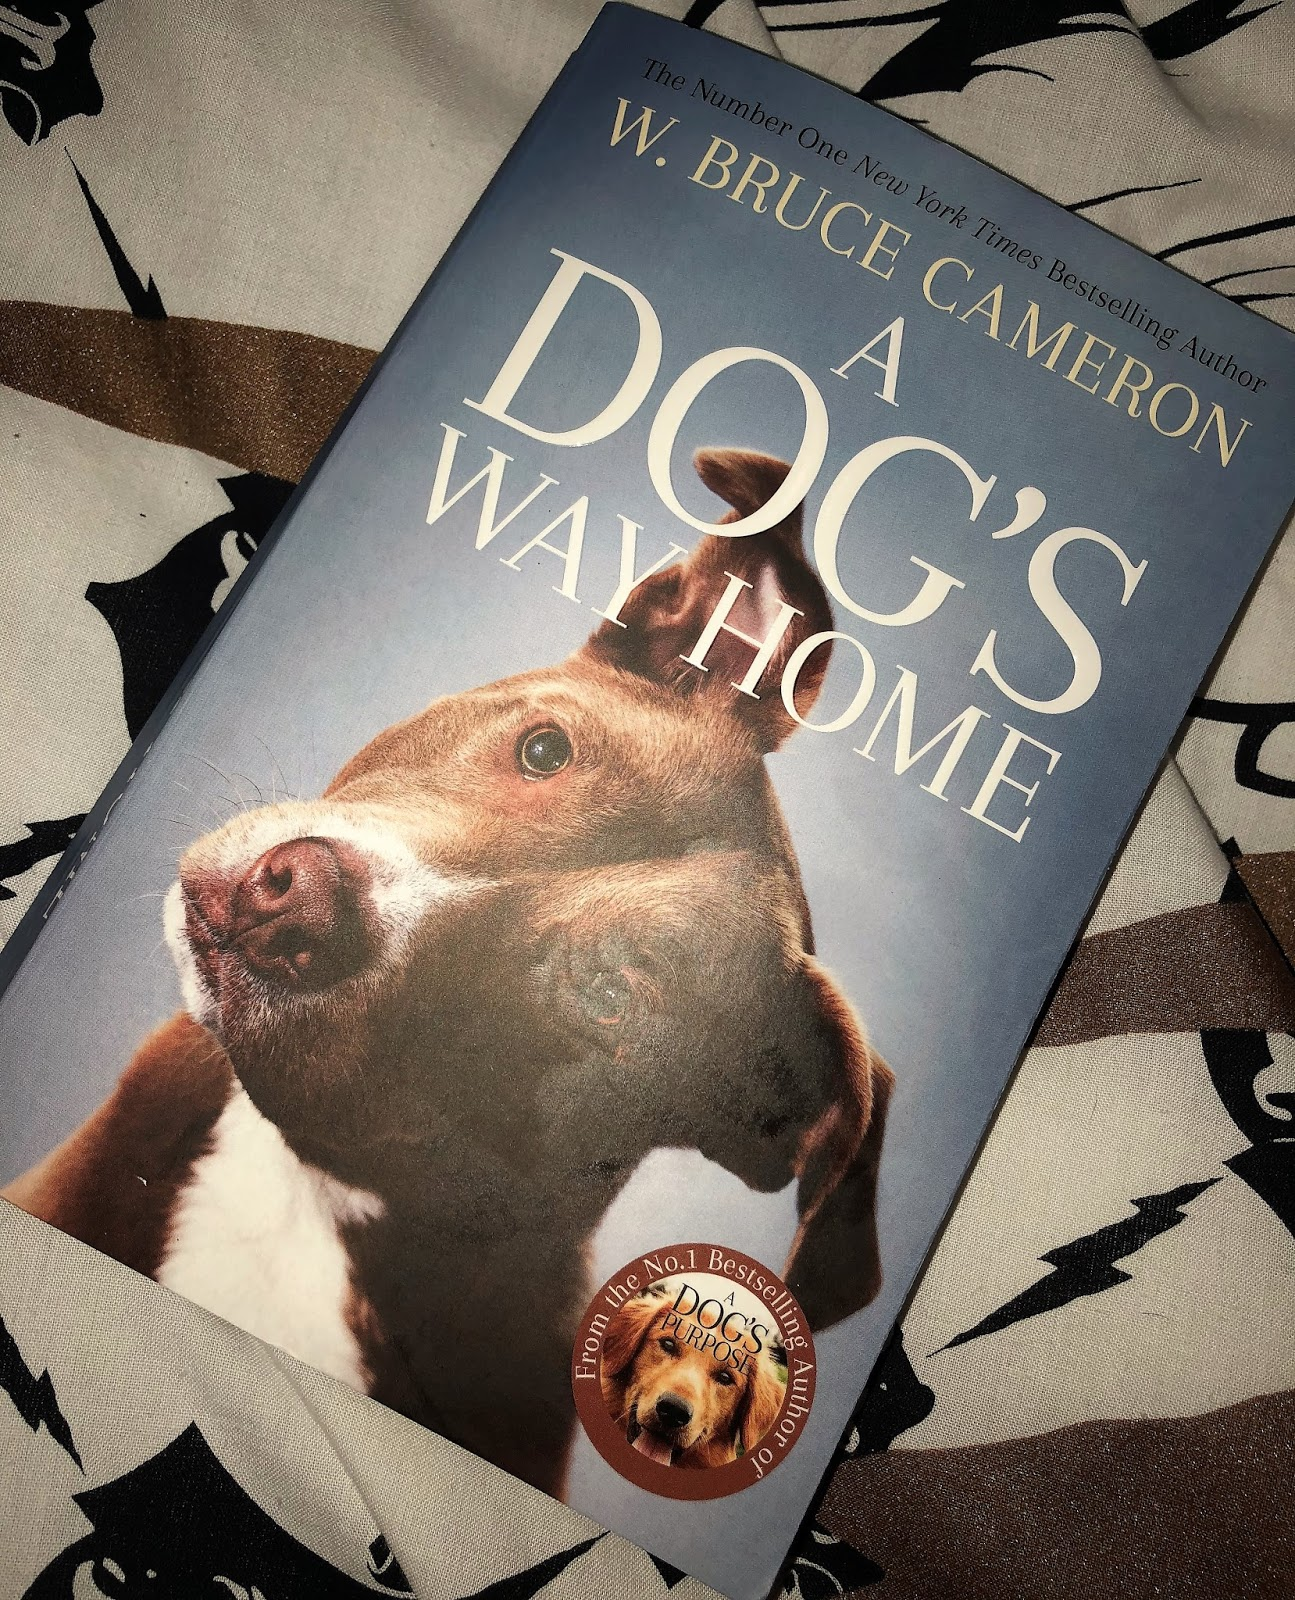 Aimee Raindrop Writes: Book Review: A Dog's Way Home by W